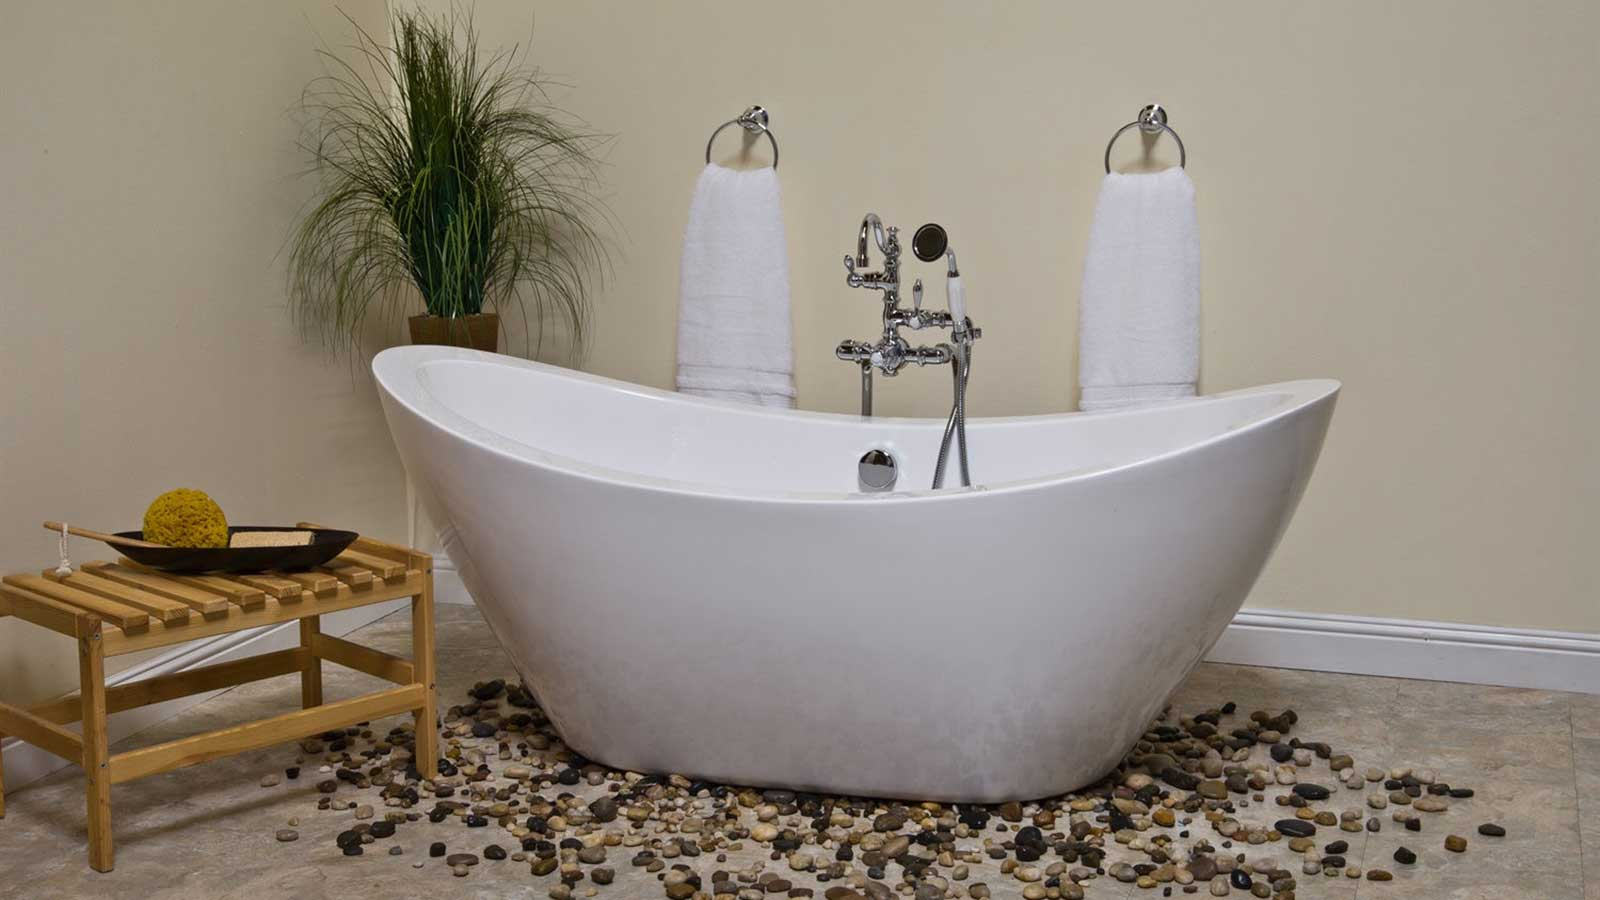 Materials Used For Bathtubs